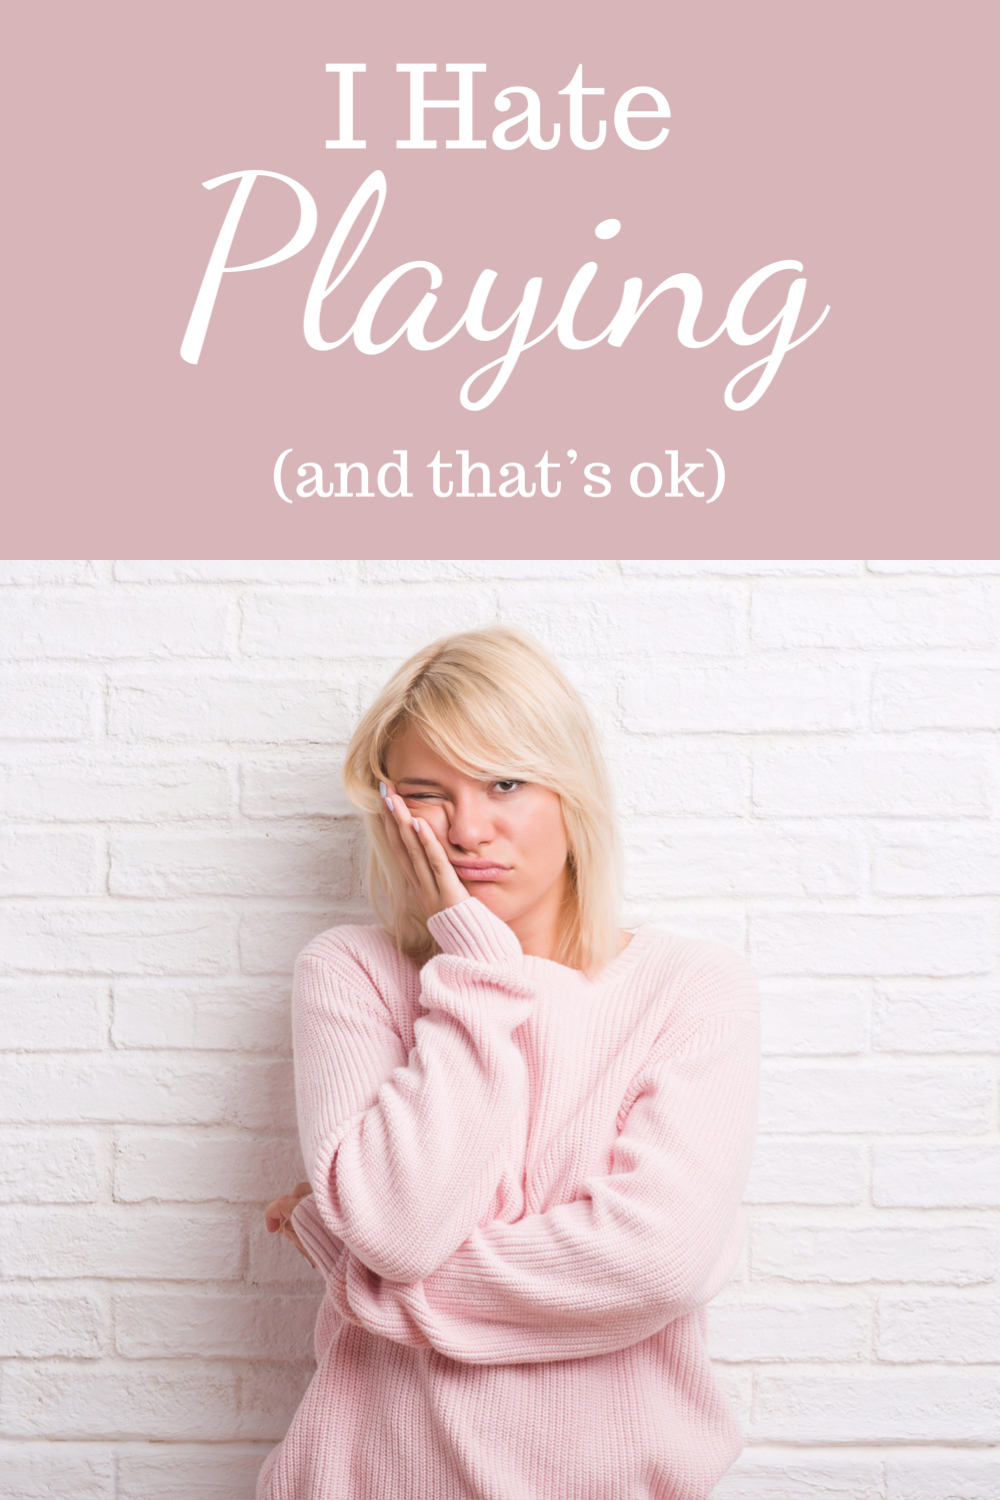 I hate playing (and that's ok)